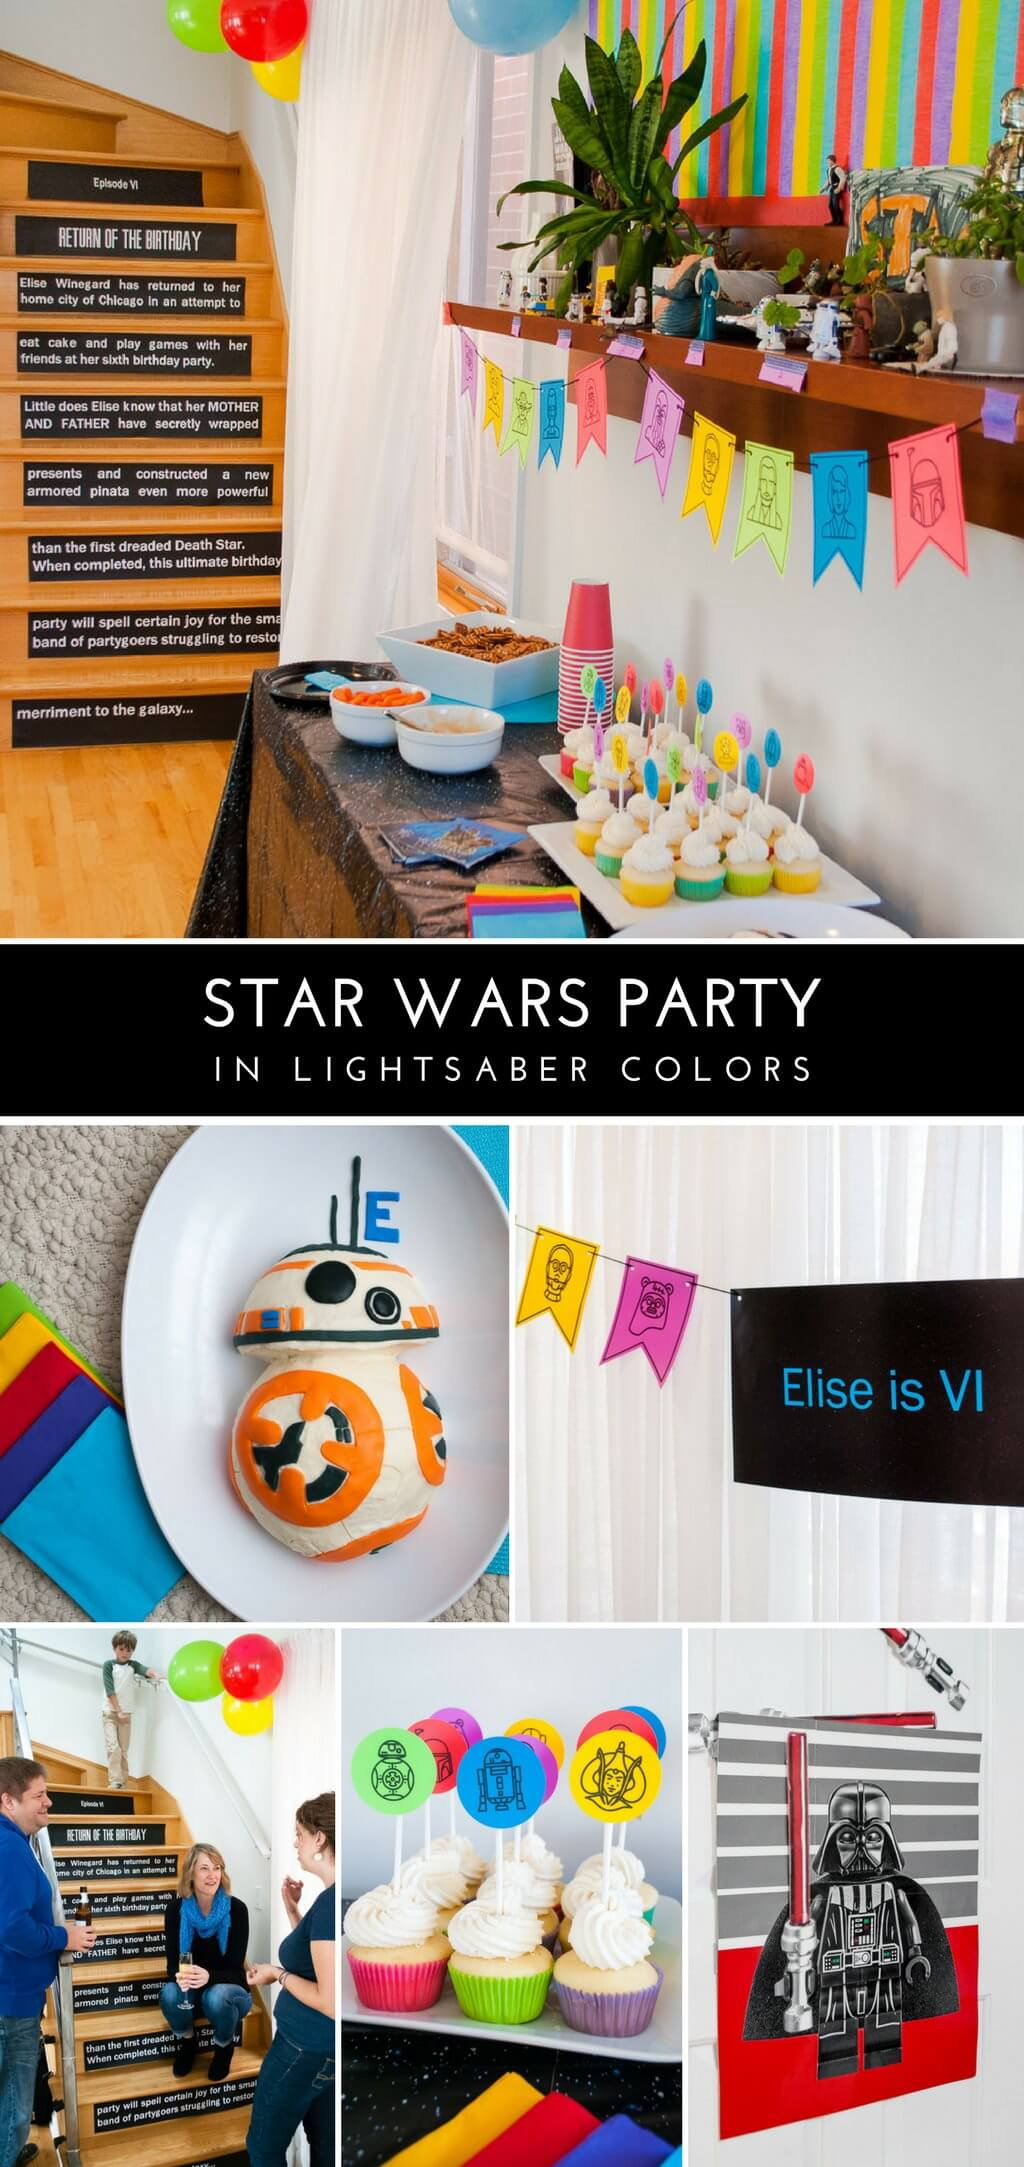 Star Wars Decorations Ideas Star Wars Birthday Party In Lightsaber Colors